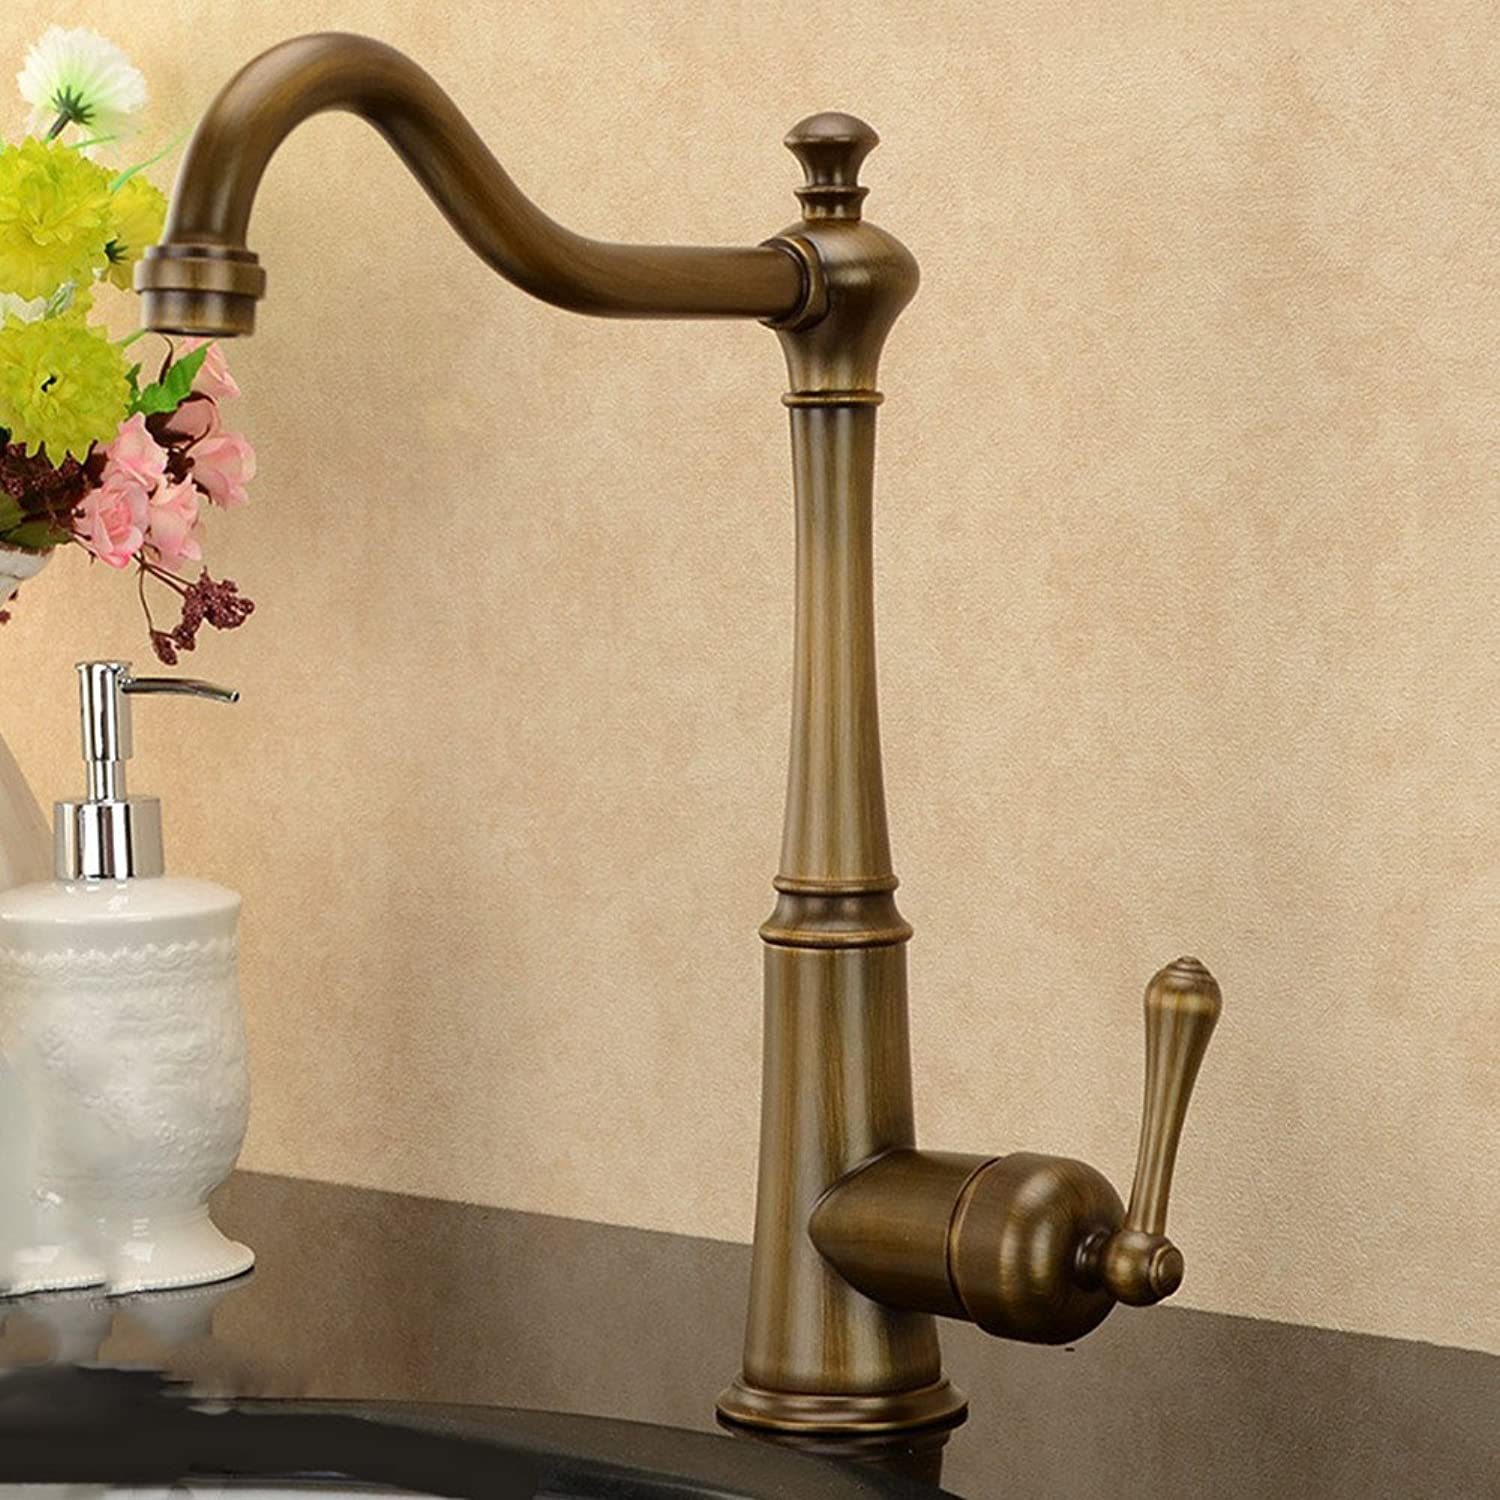 Gyps Faucet Basin Mixer Tap Waterfall Faucet Antique Bathroom Retro kitchen dish washing basin sink to turn the tap.,Modern Bath Mixer Tap Bathroom Tub Lever Faucet